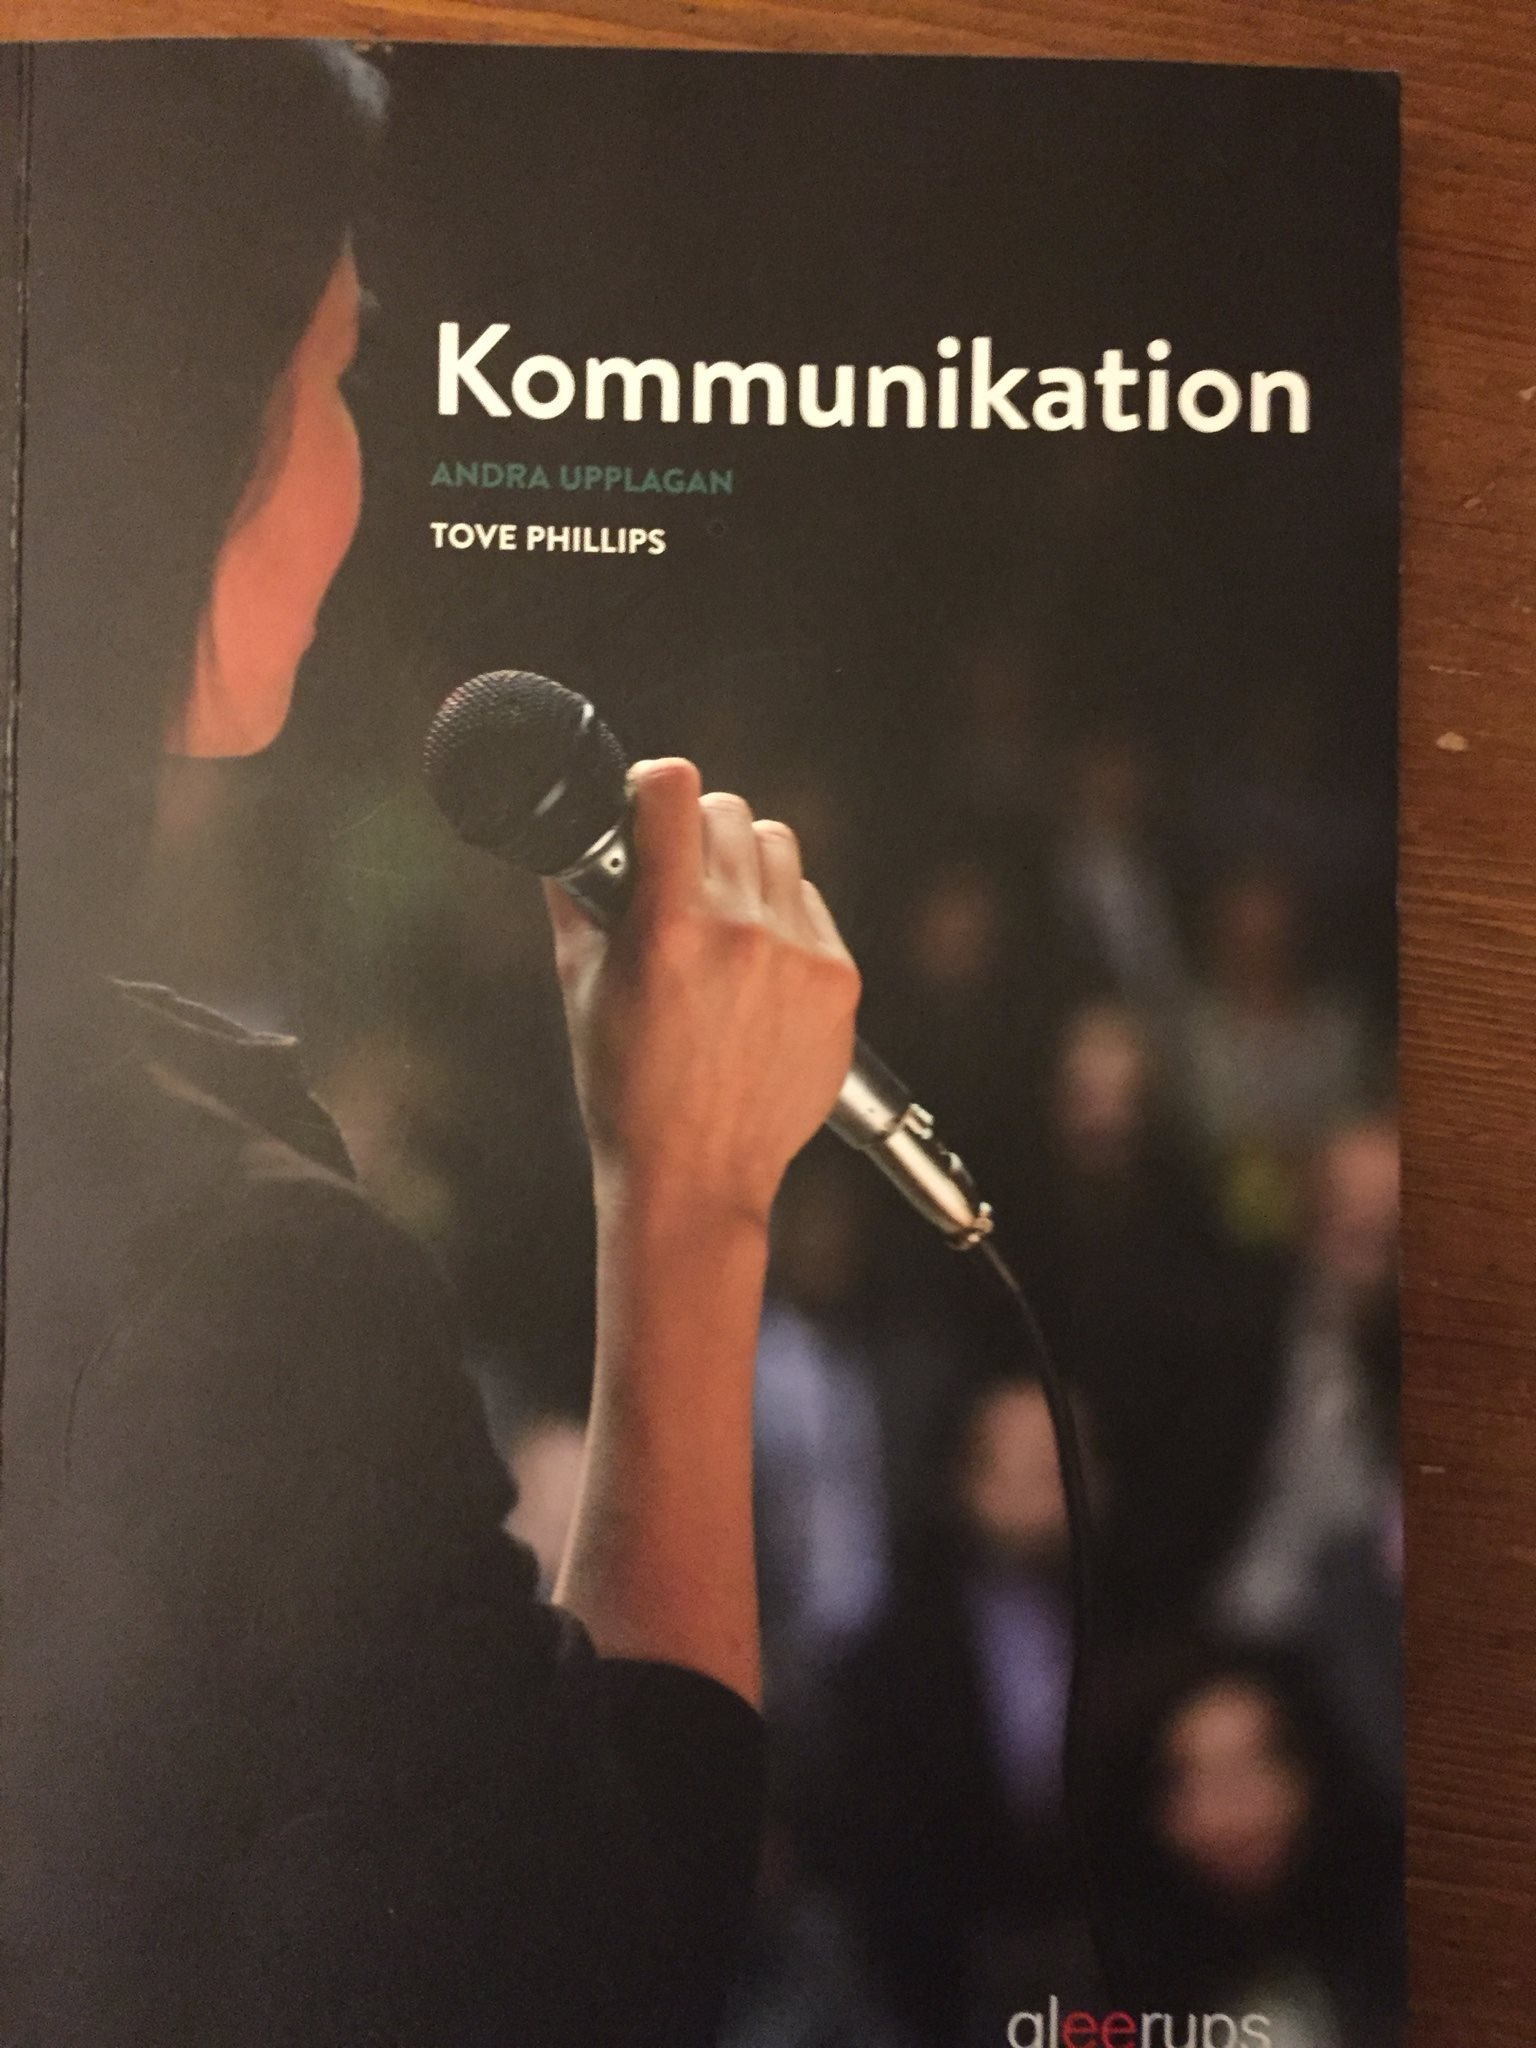 Kommunikation, Tove Phillips